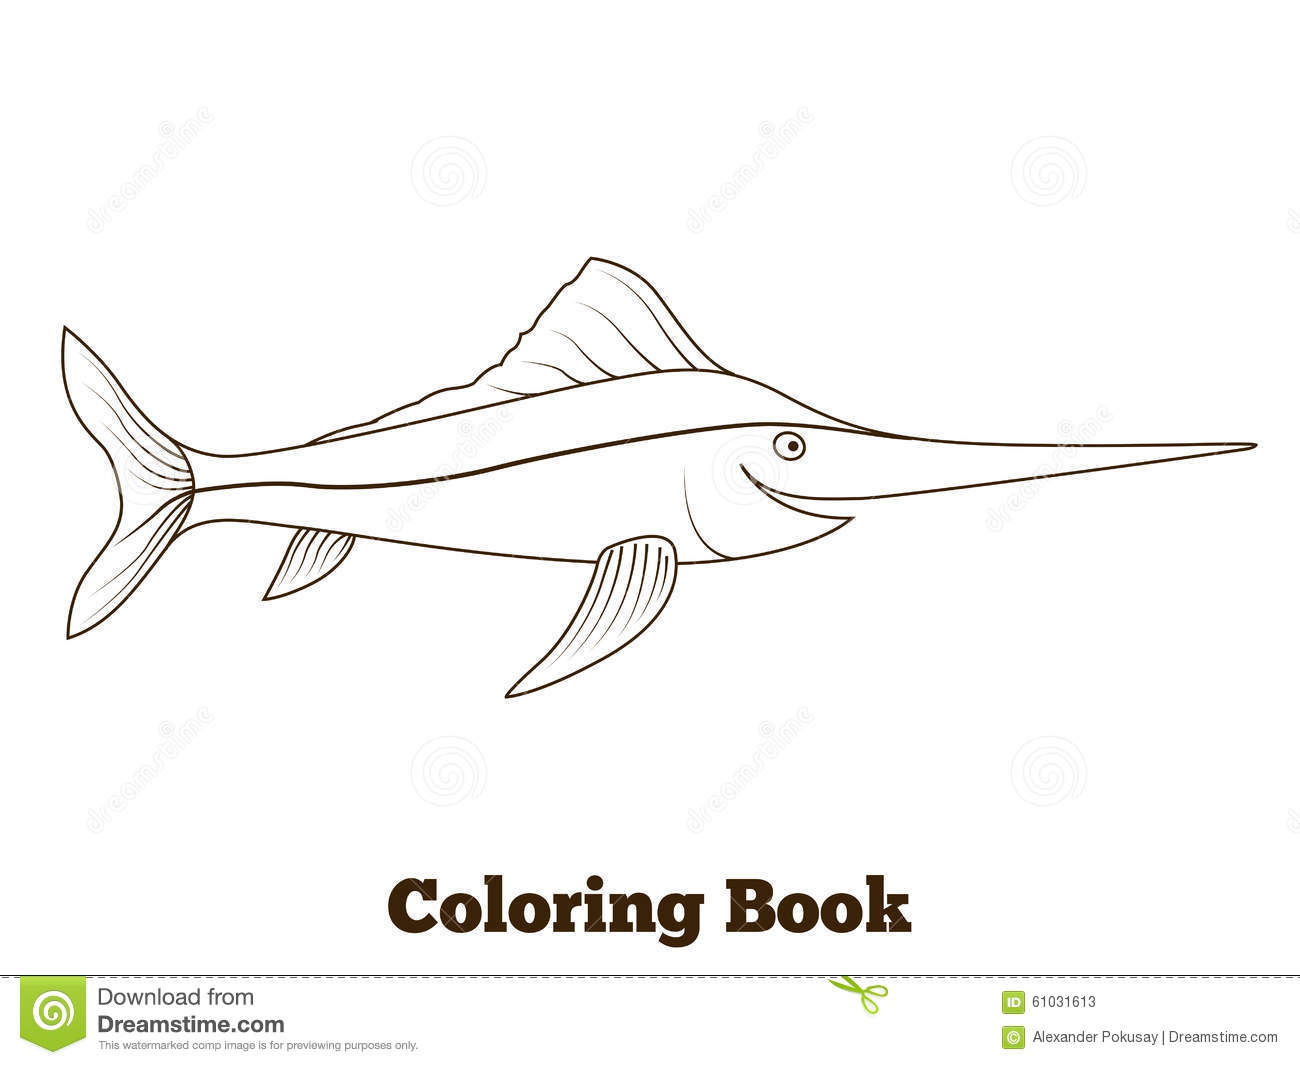 2015 12 07 as well Stock Illustration Coloring Book Swordfish Fish Cartoon Illustration Vector Educational Image61031613 besides Index besides Crystal Colony further Cartoon Watermelon 13582272. on small water plans